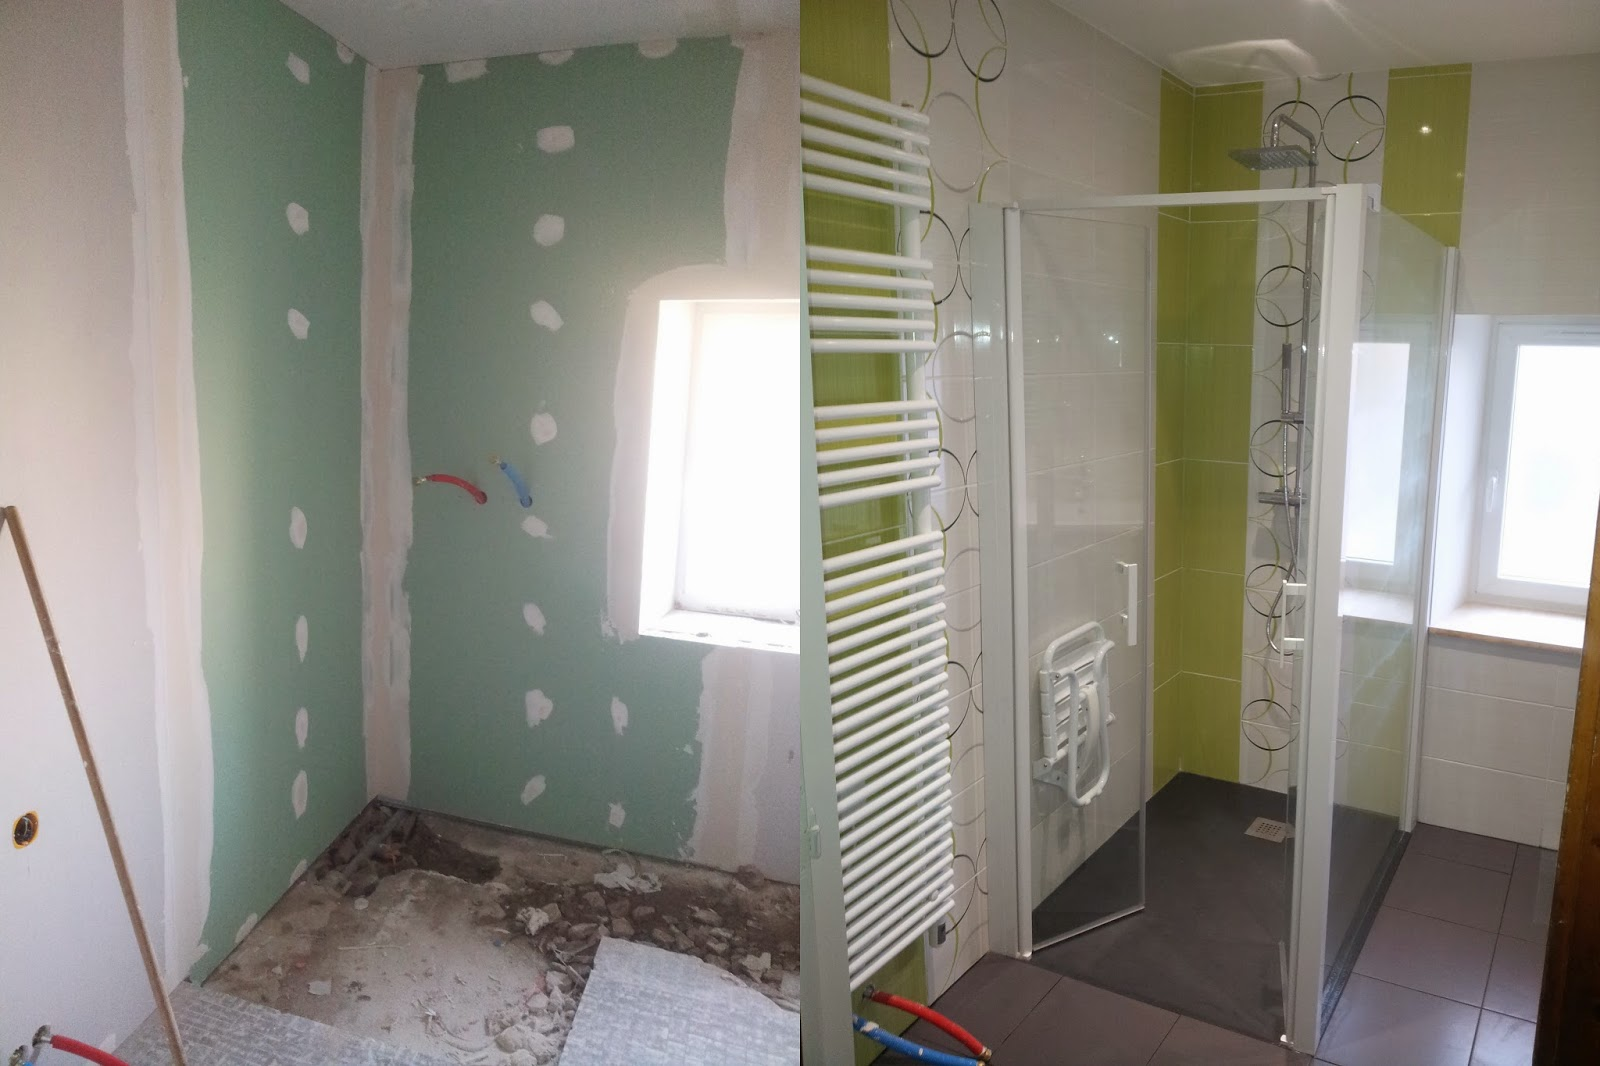 Michel le coz agencement d coration avant apr s salle for Salle bain verte